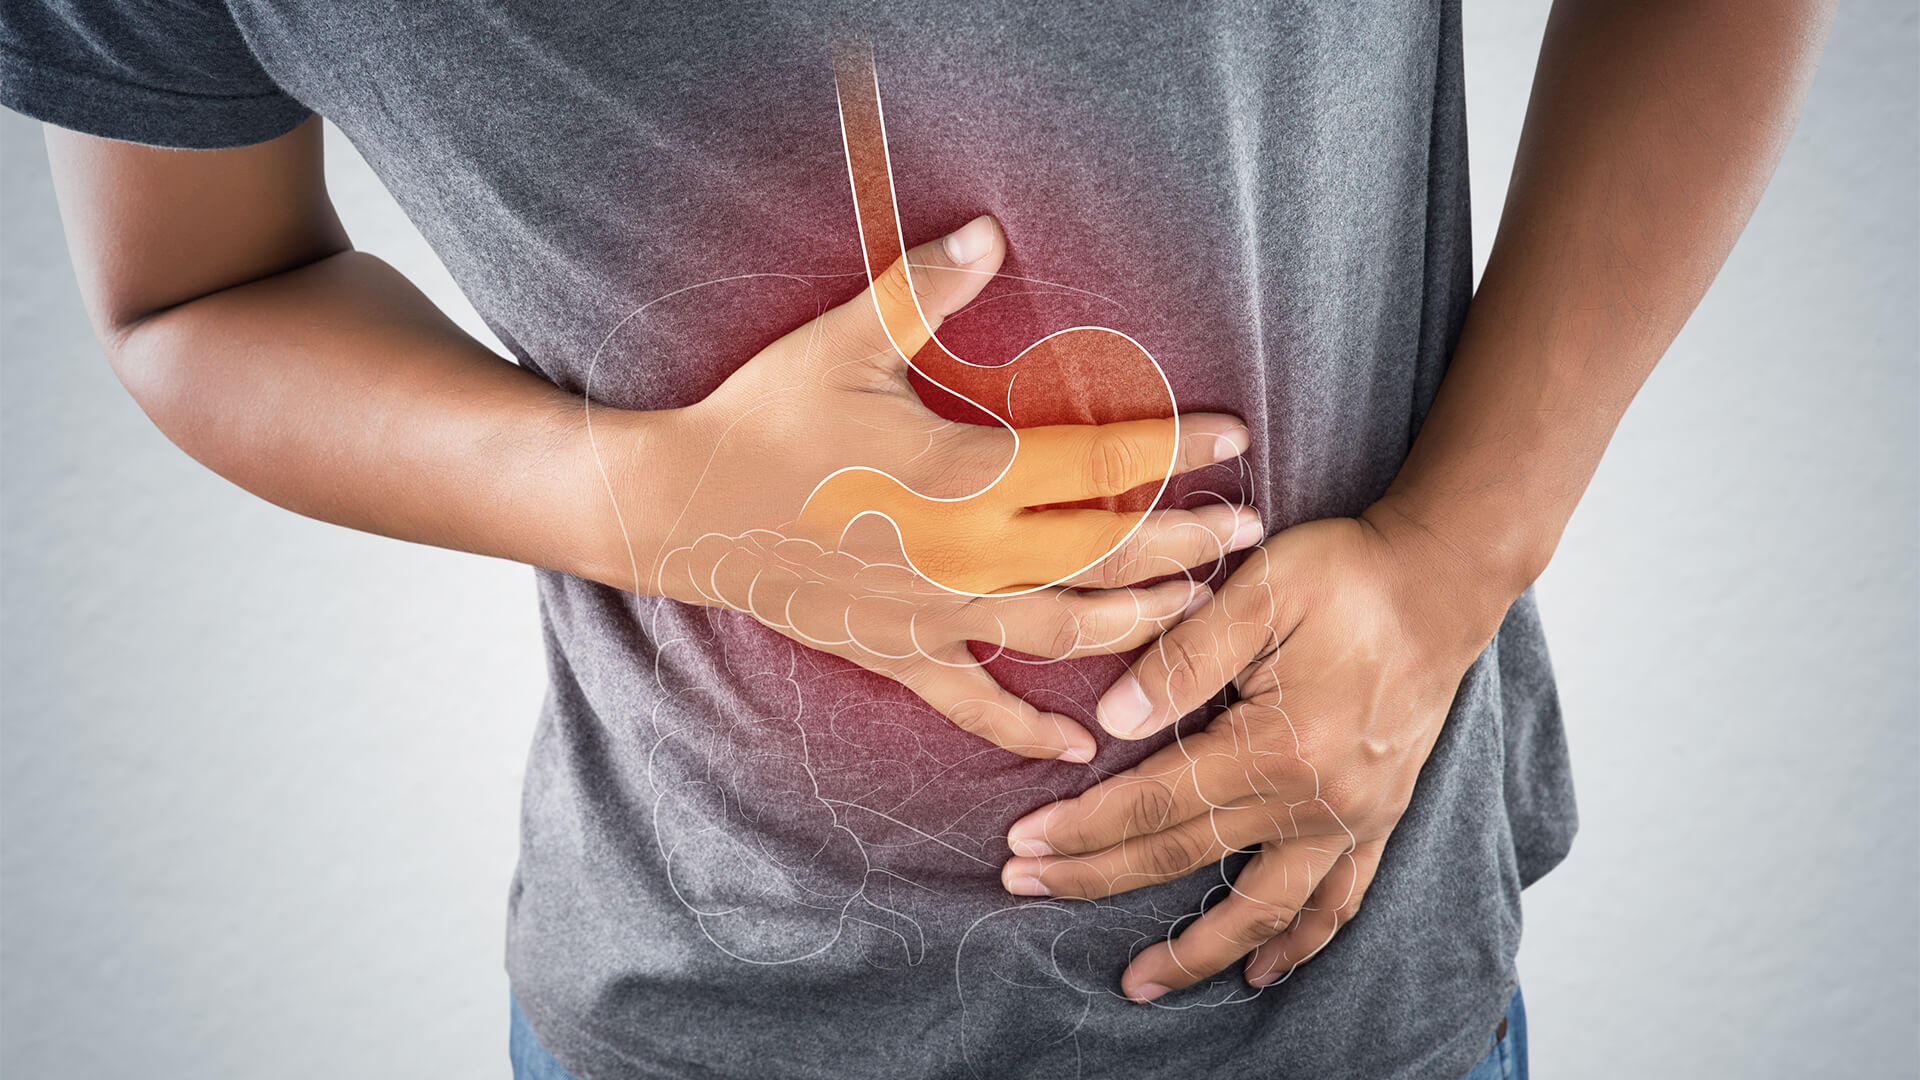 Cancer From Zantac: 5 Things to Know About Ulcer Medications